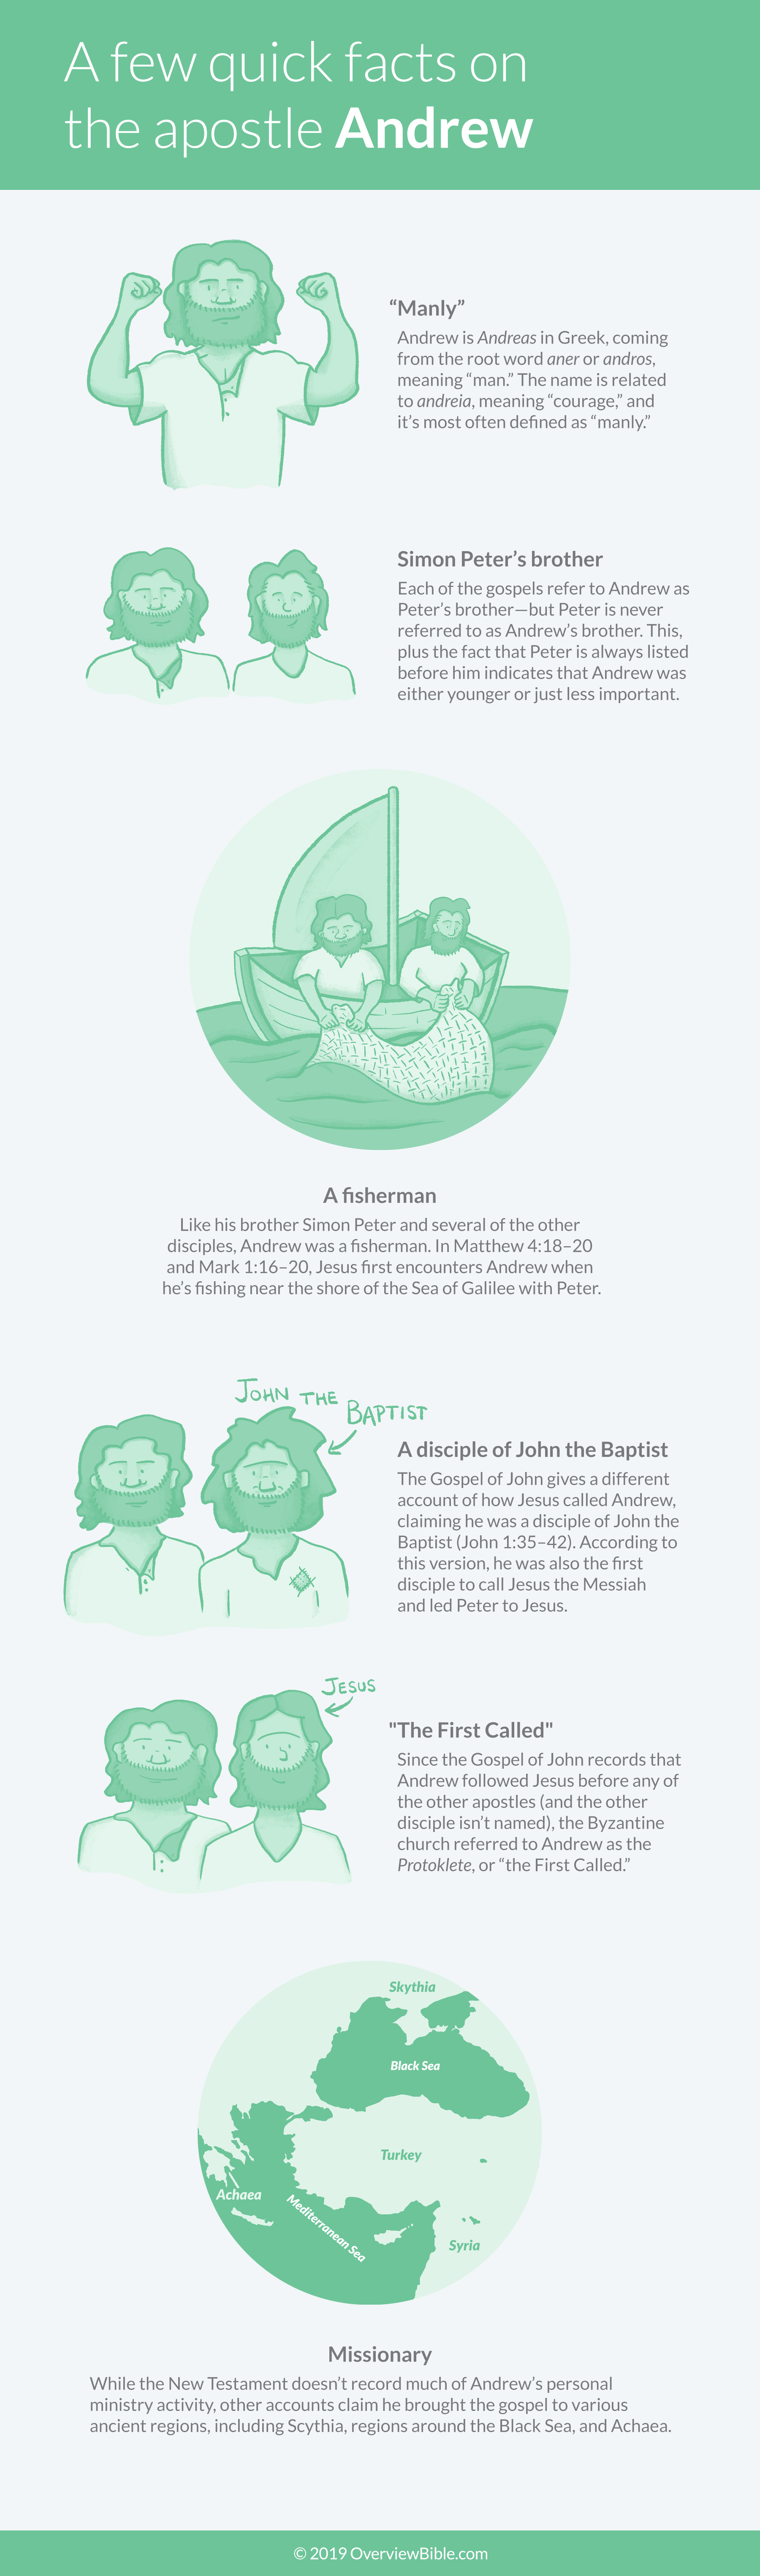 infographic with facts about the Apostle Andrew